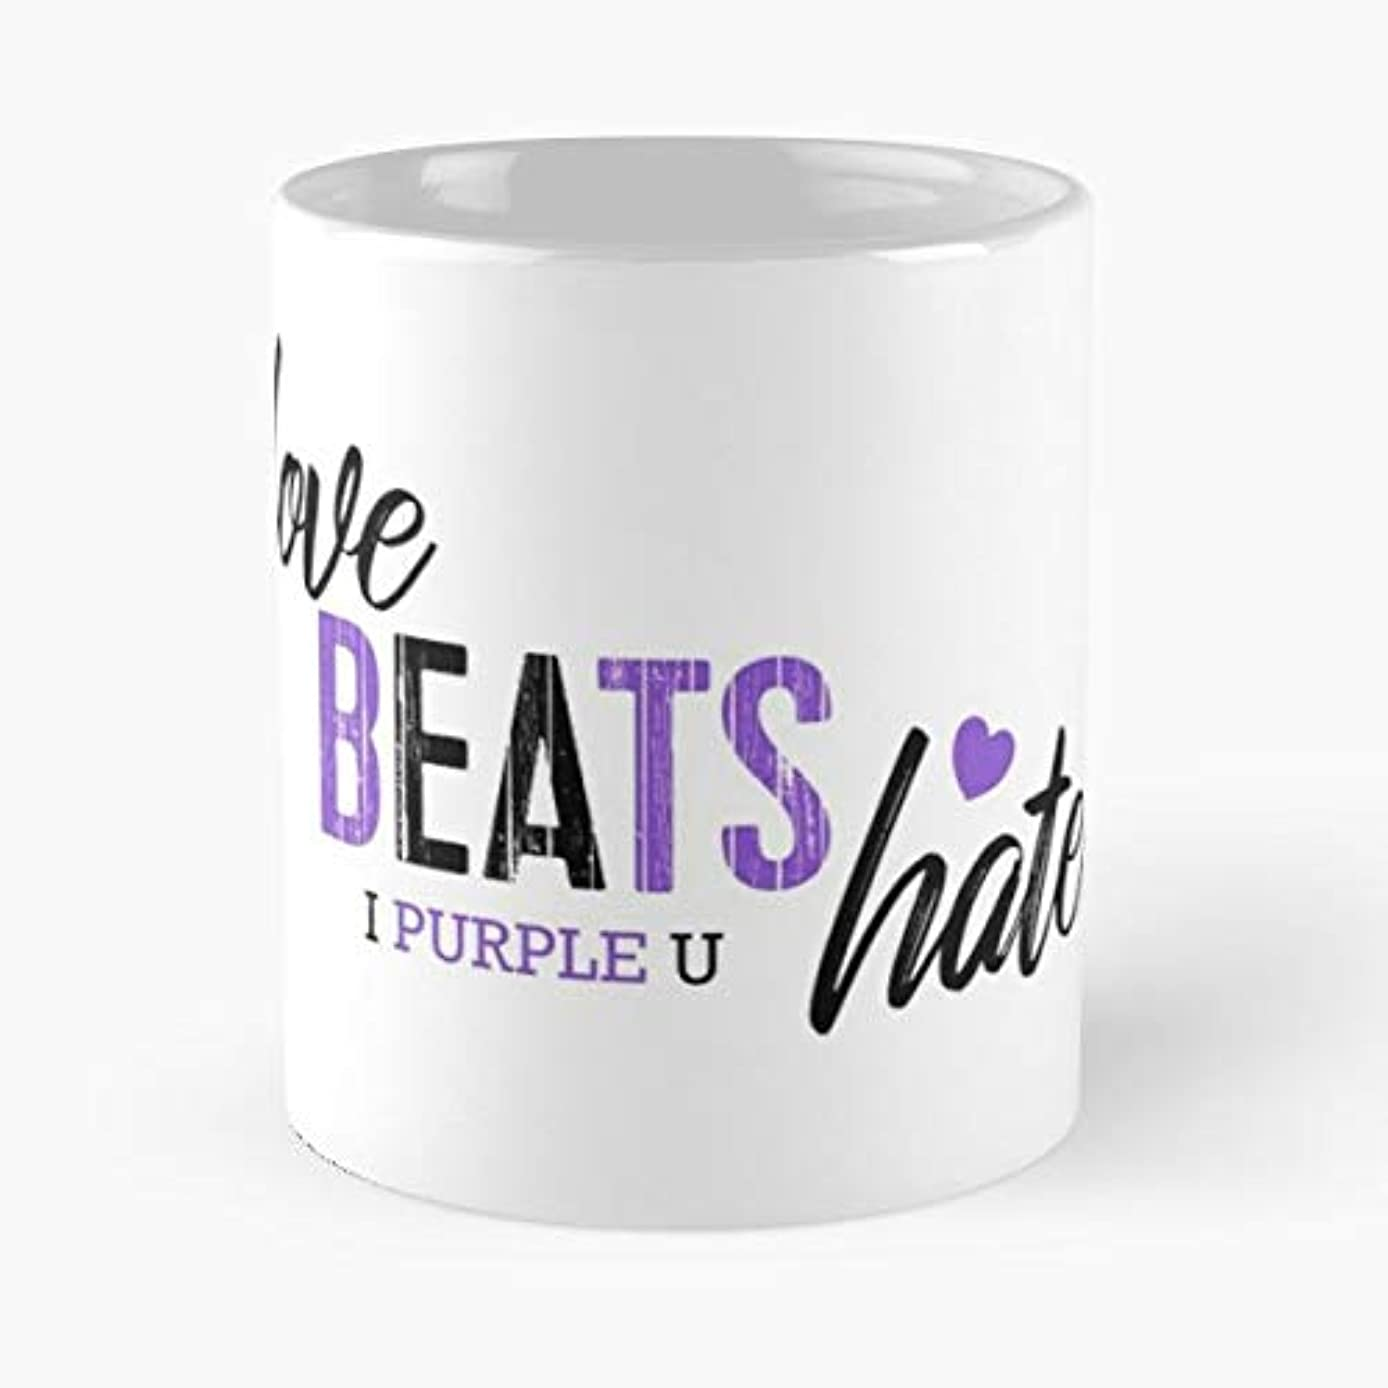 Bts Army I Purple You Love Beats Hate Merch Coffee Mugs Unique Ceramic Novelty Cup